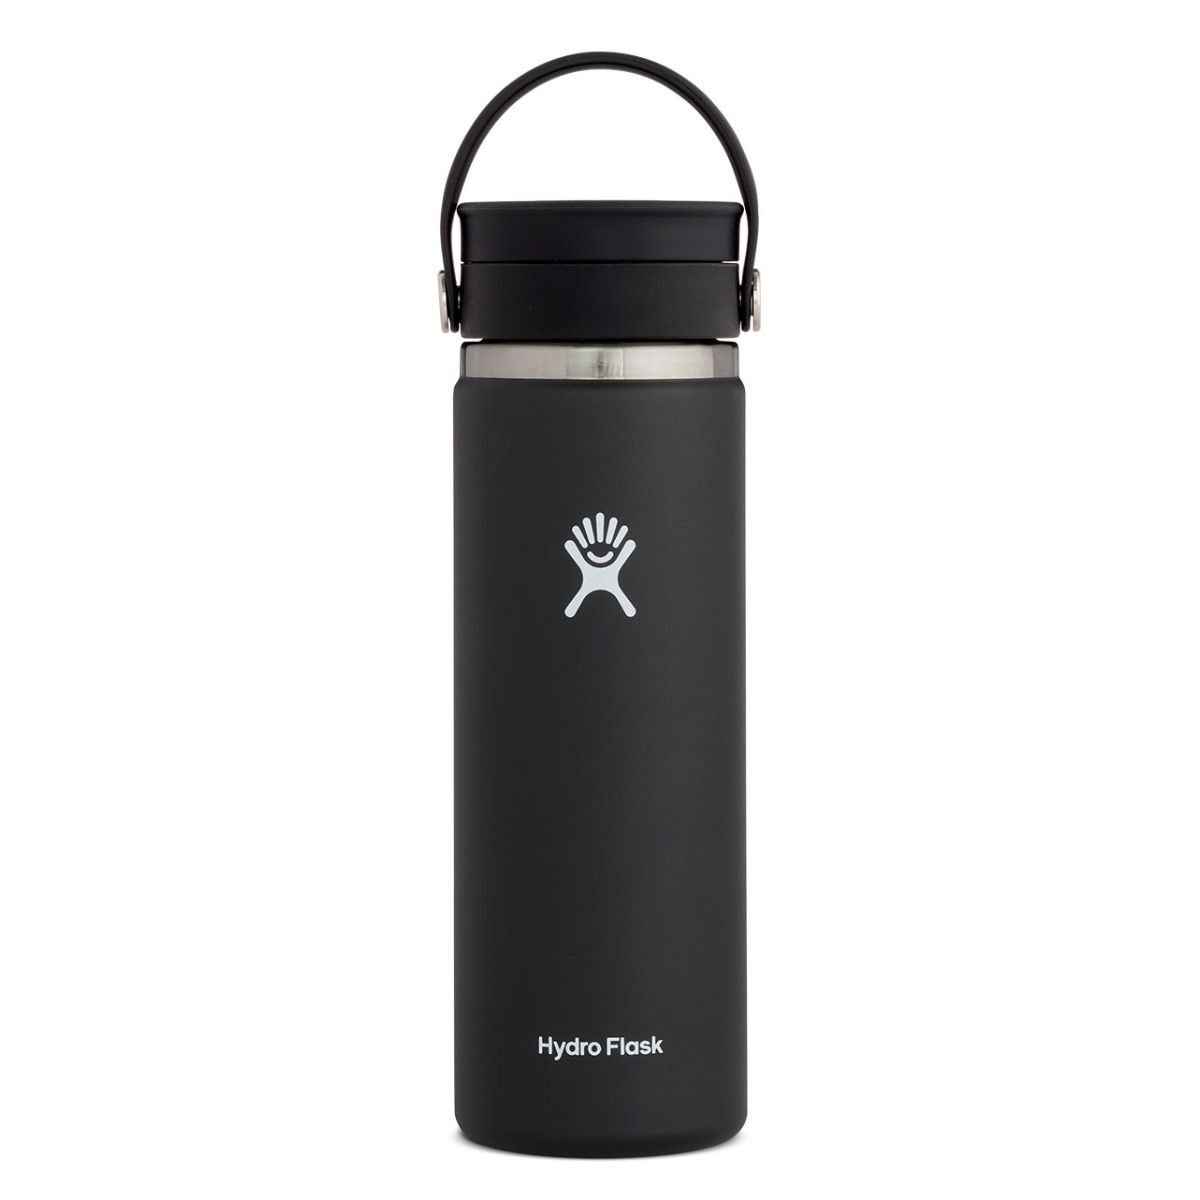 'Hydro Flask' 20 oz. Wide Mouth Sip - Black